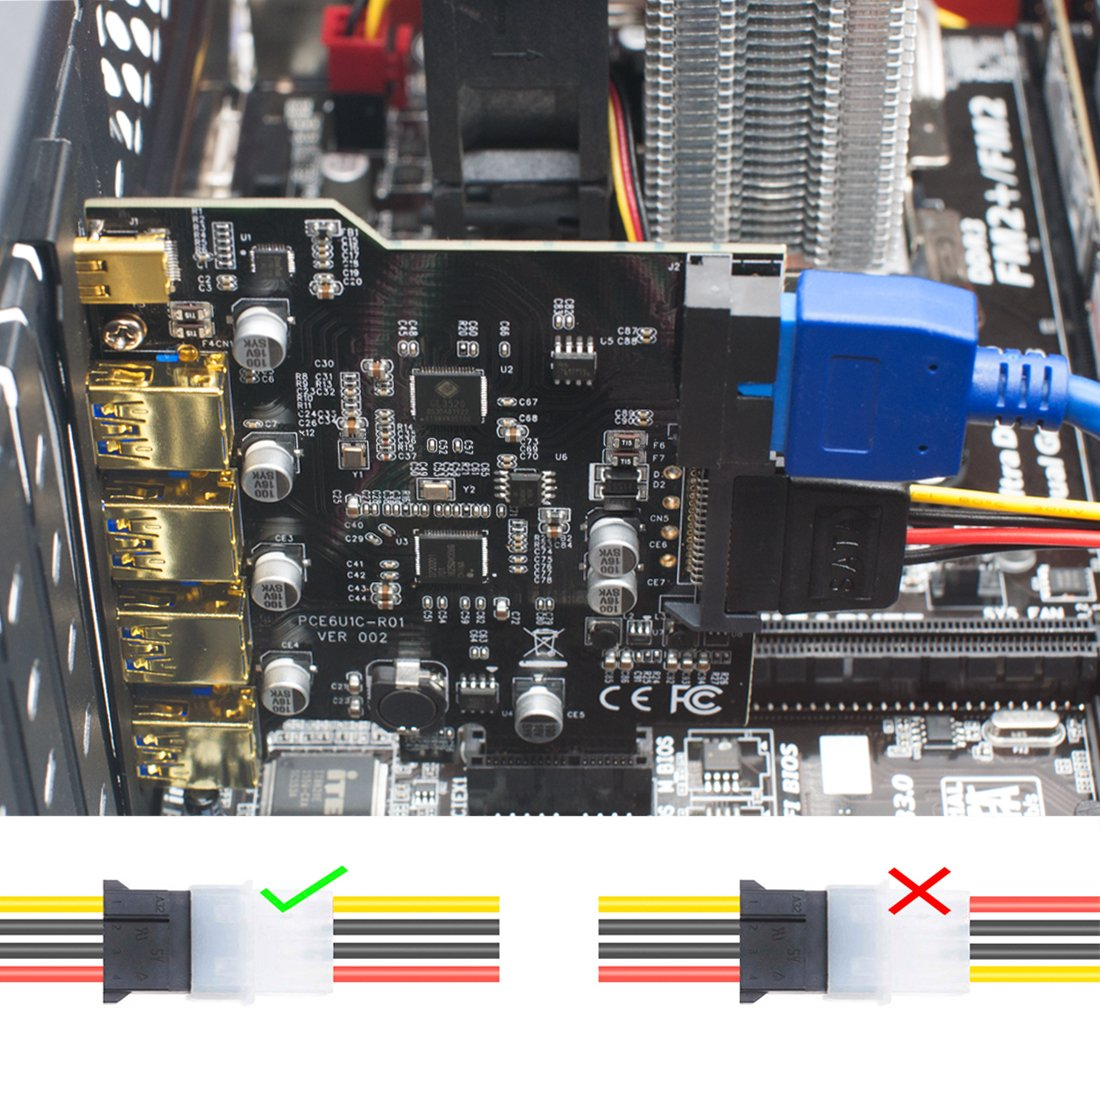 Mailiya Pci E To Type C A 5 Port Usb 30 Express Toy And Carefully Look For Circuitry That You Can Bend Manipulate Card 15 Pin Power Connector Mini Hub Controller Adapter Internal 20